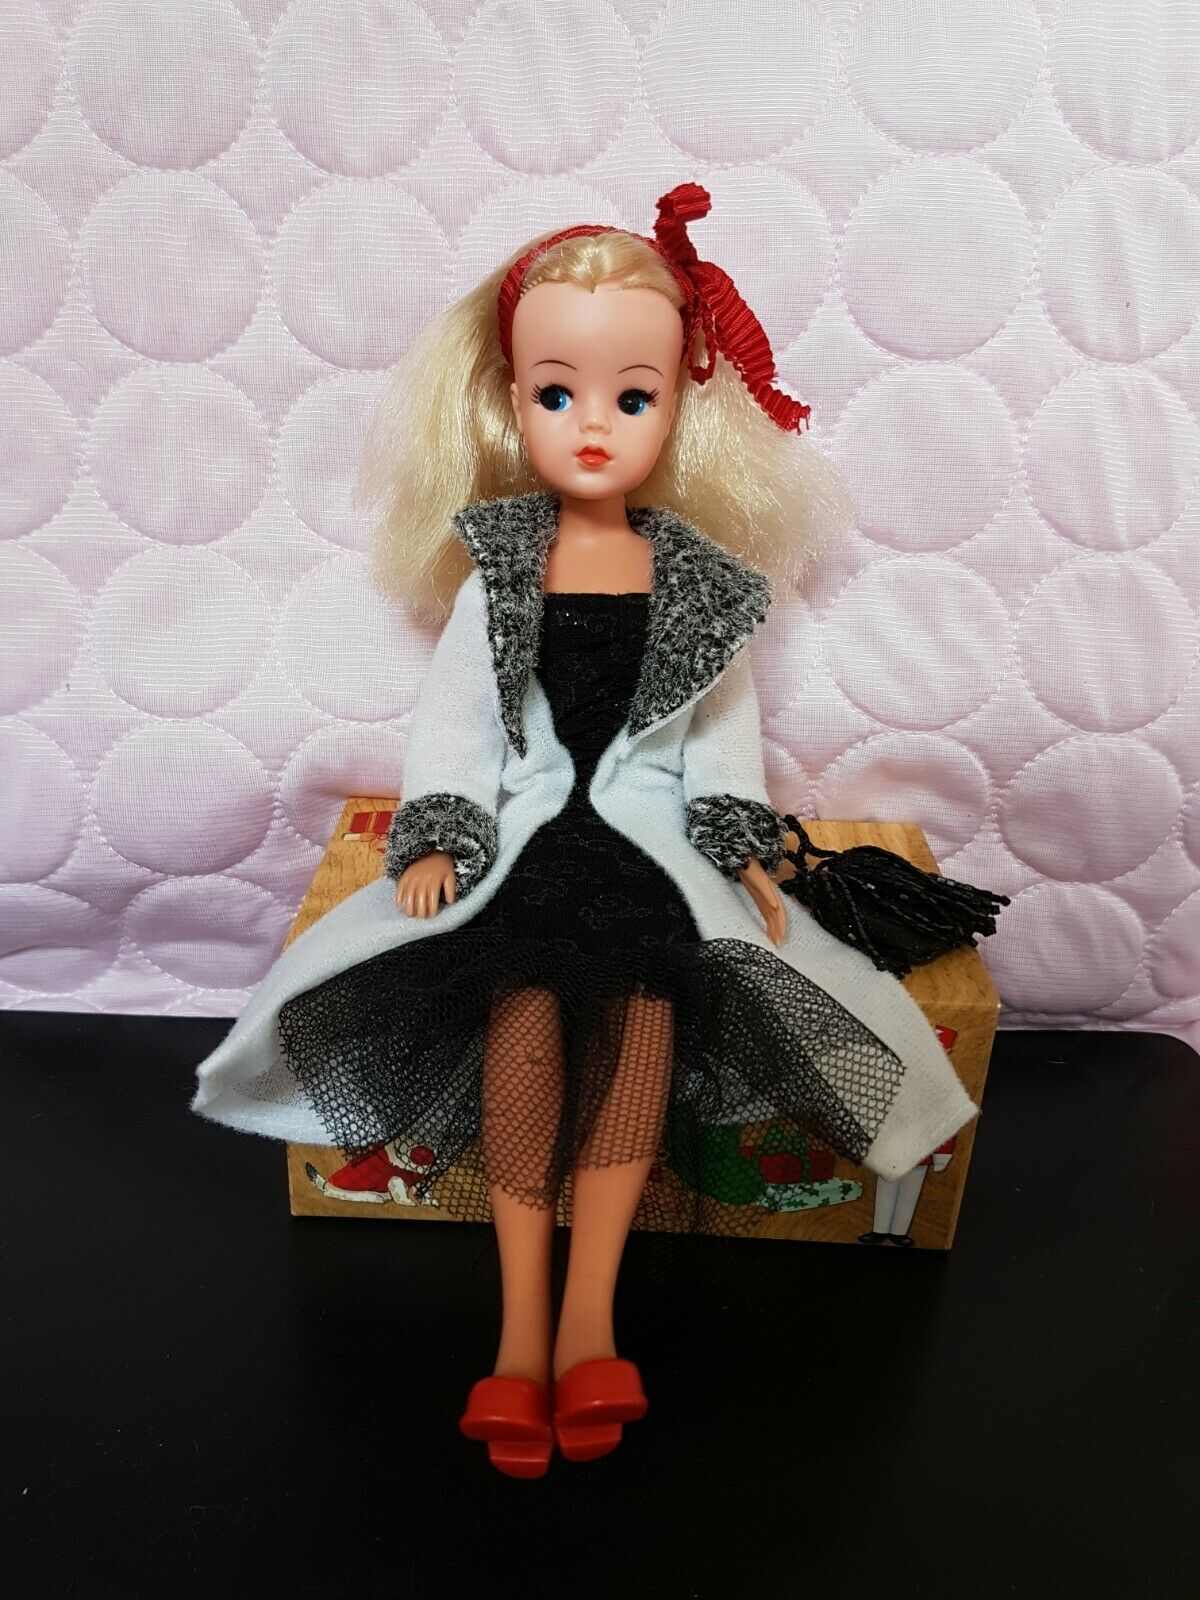 VINTAGE PEDIGREE Sindy doll outfit in fatto in casa